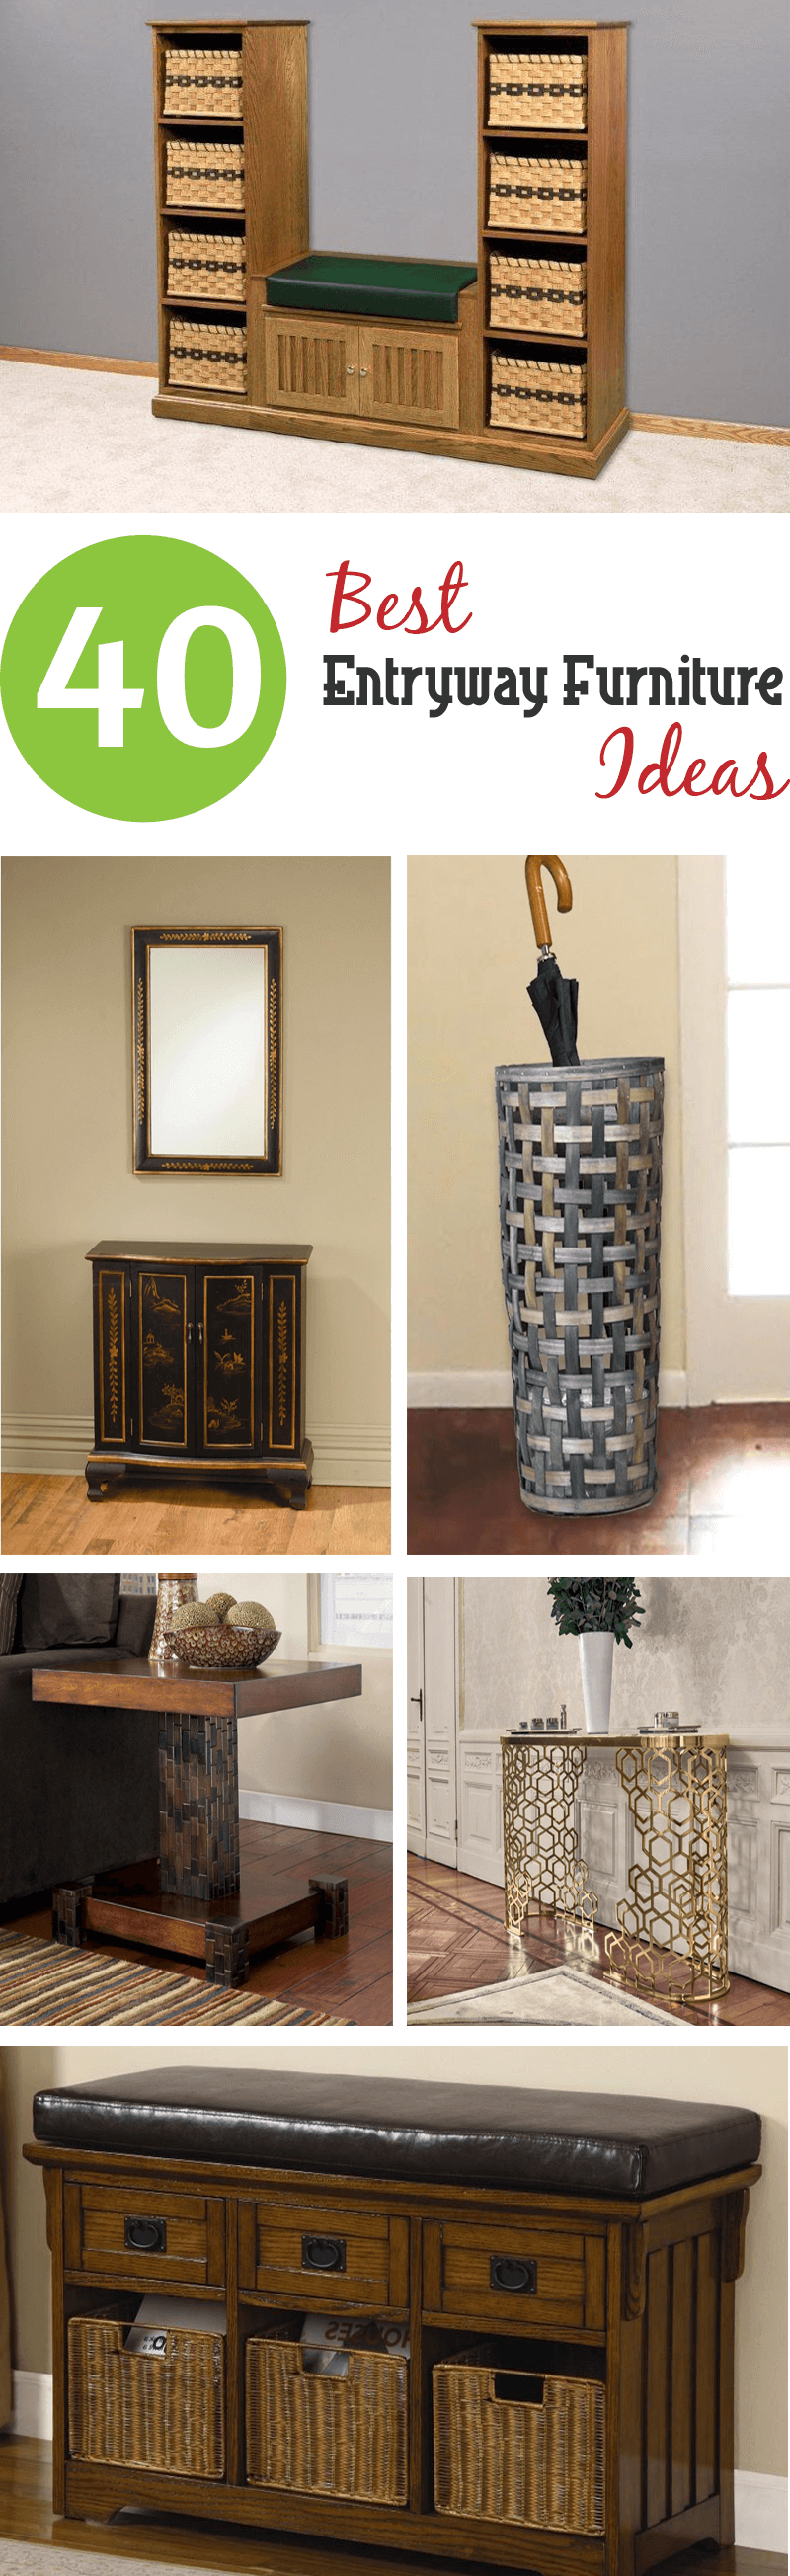 40 Amazing Entryway Furniture Ideas Which Will Grab The Attention Of Your  Guests. Best Entryway Furniture